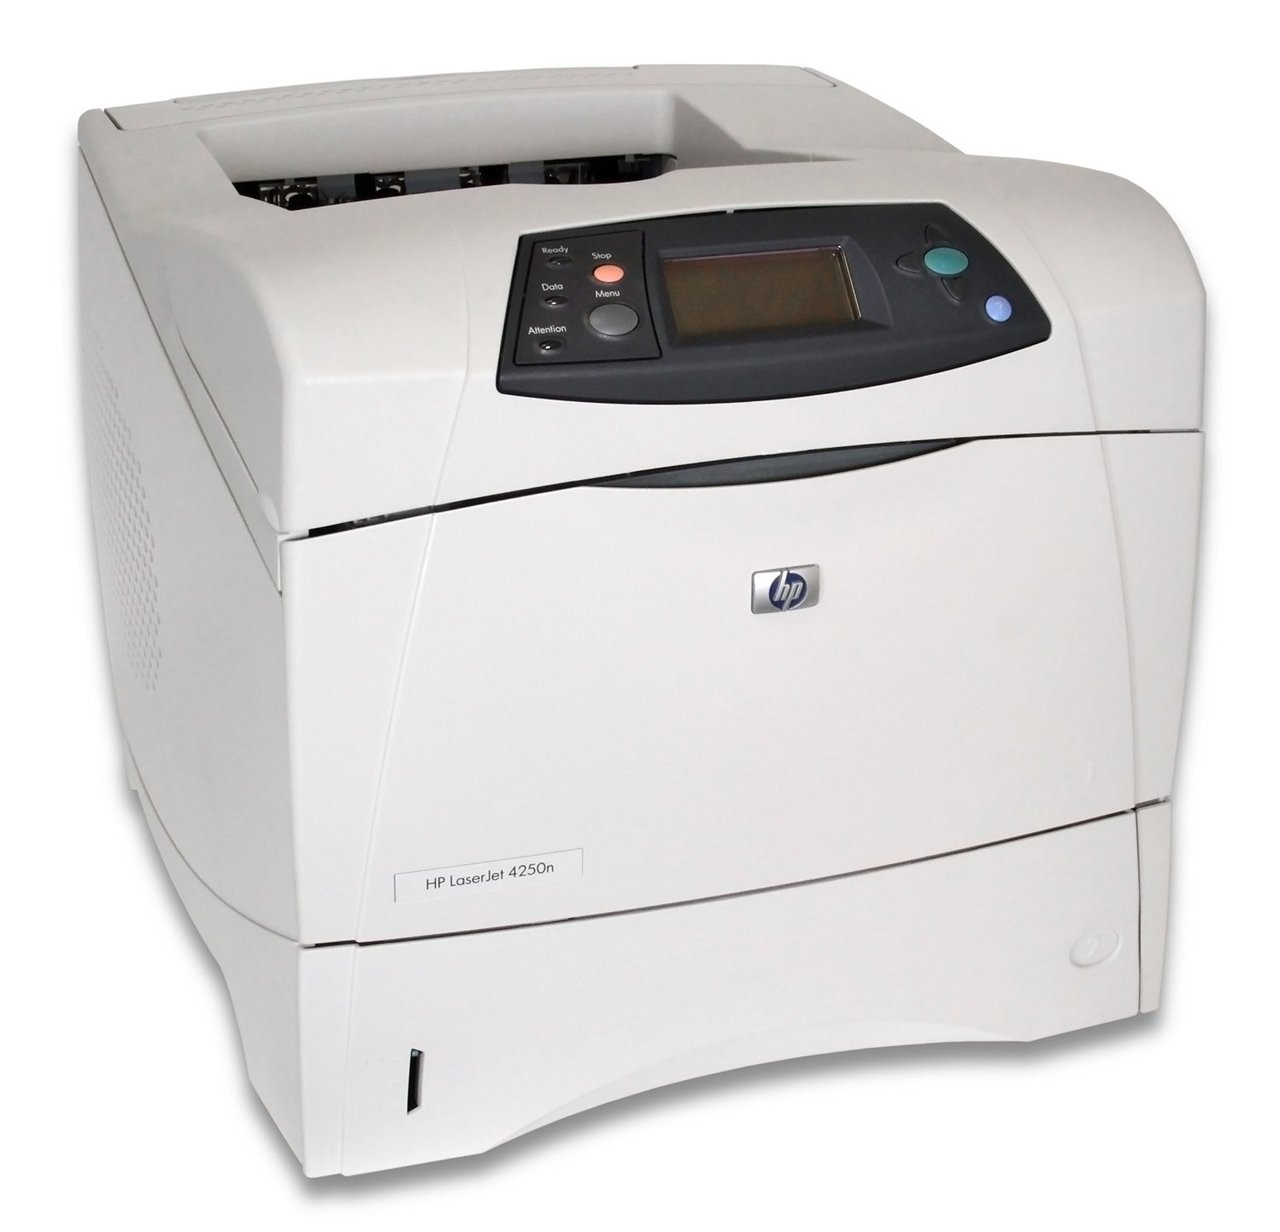 LASERJET 4250DTN TREIBER WINDOWS 7